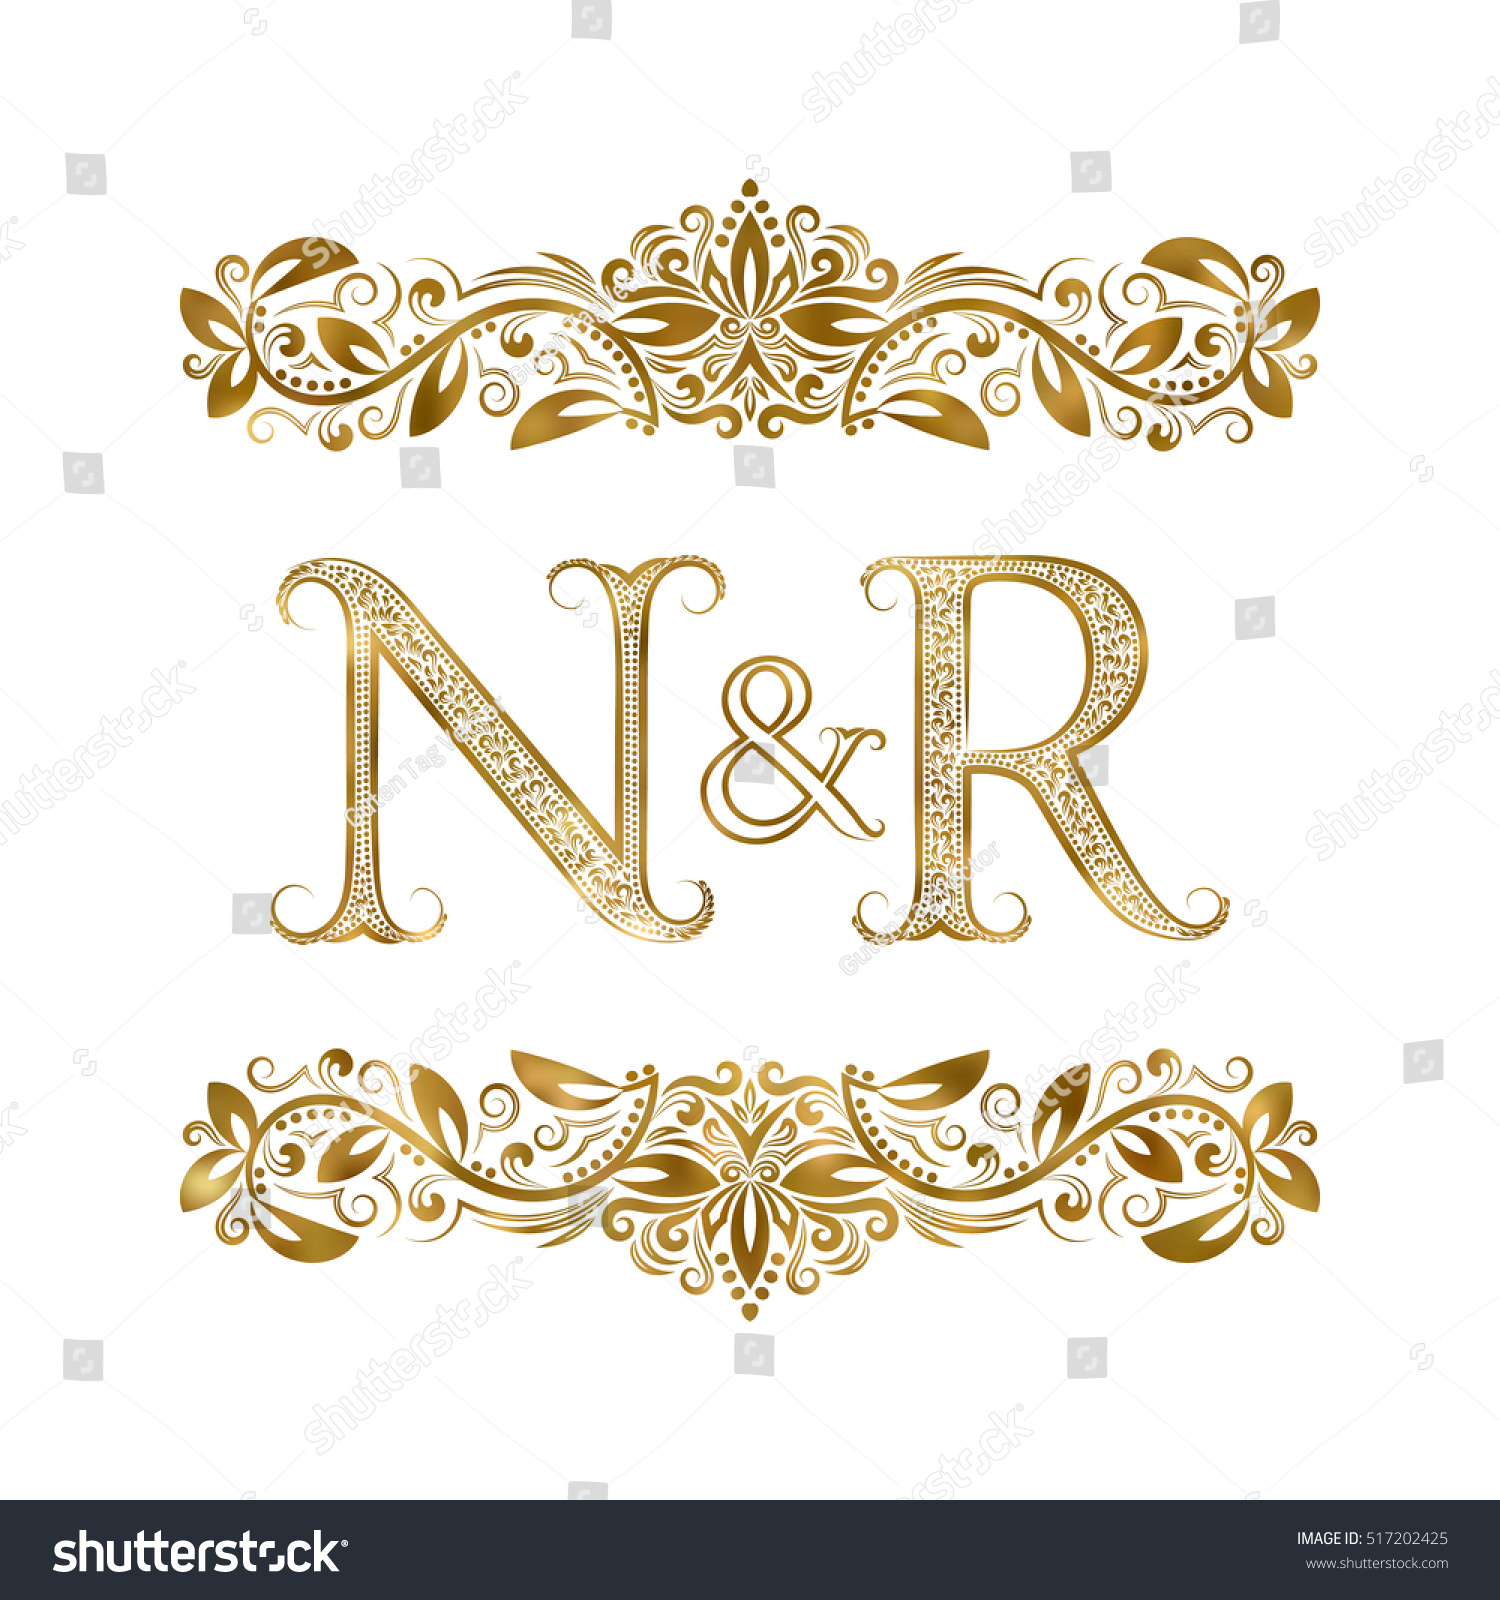 N r vintage initials logo symbol stock vector royalty free n and r vintage initials logo symbol the letters are surrounded by ornamental elements altavistaventures Gallery